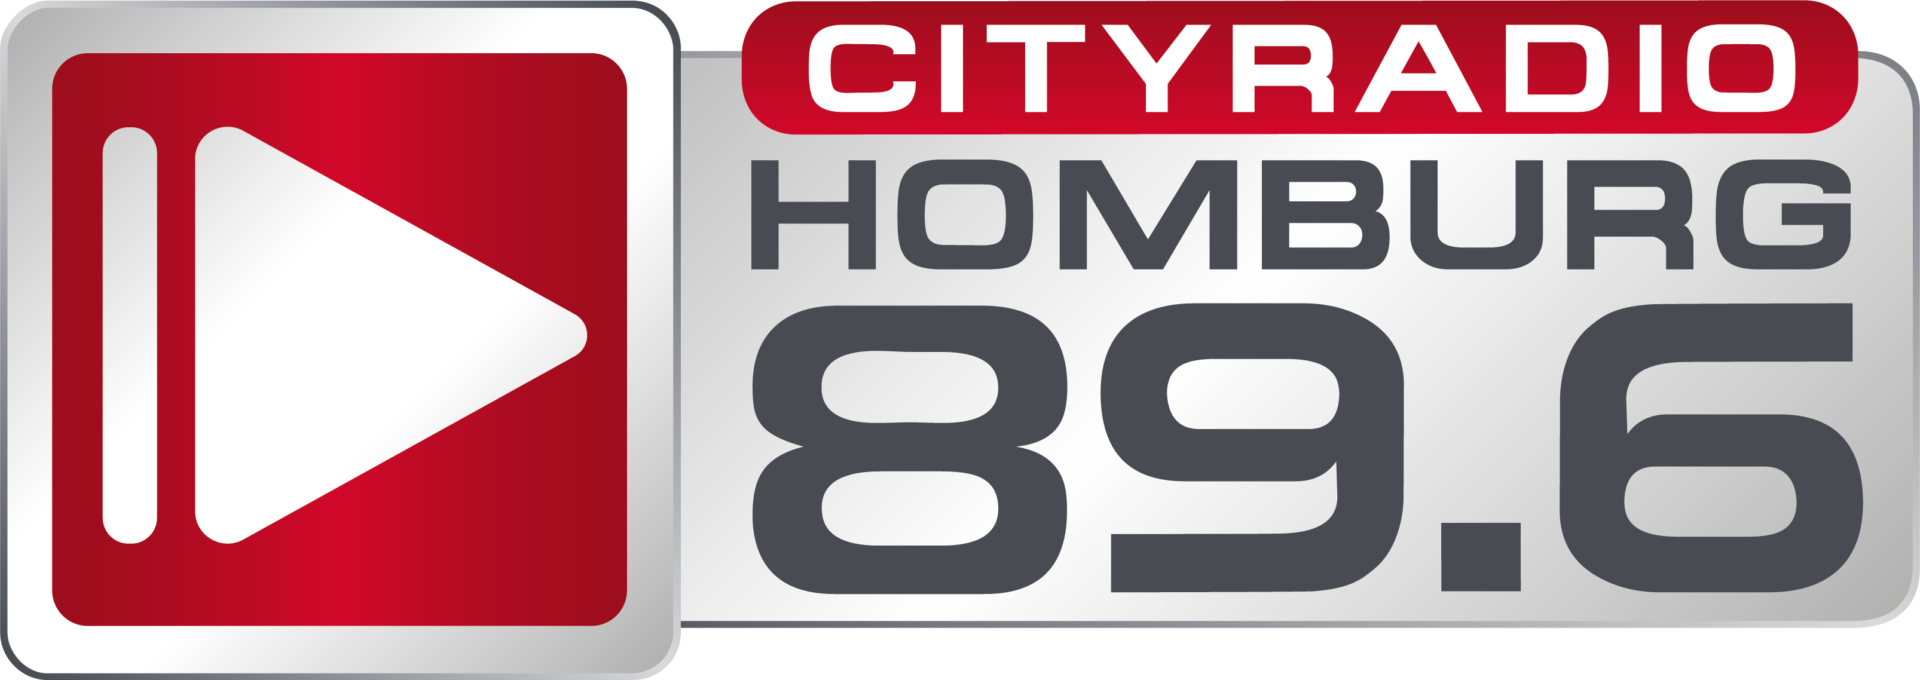 CityRadio Homburg